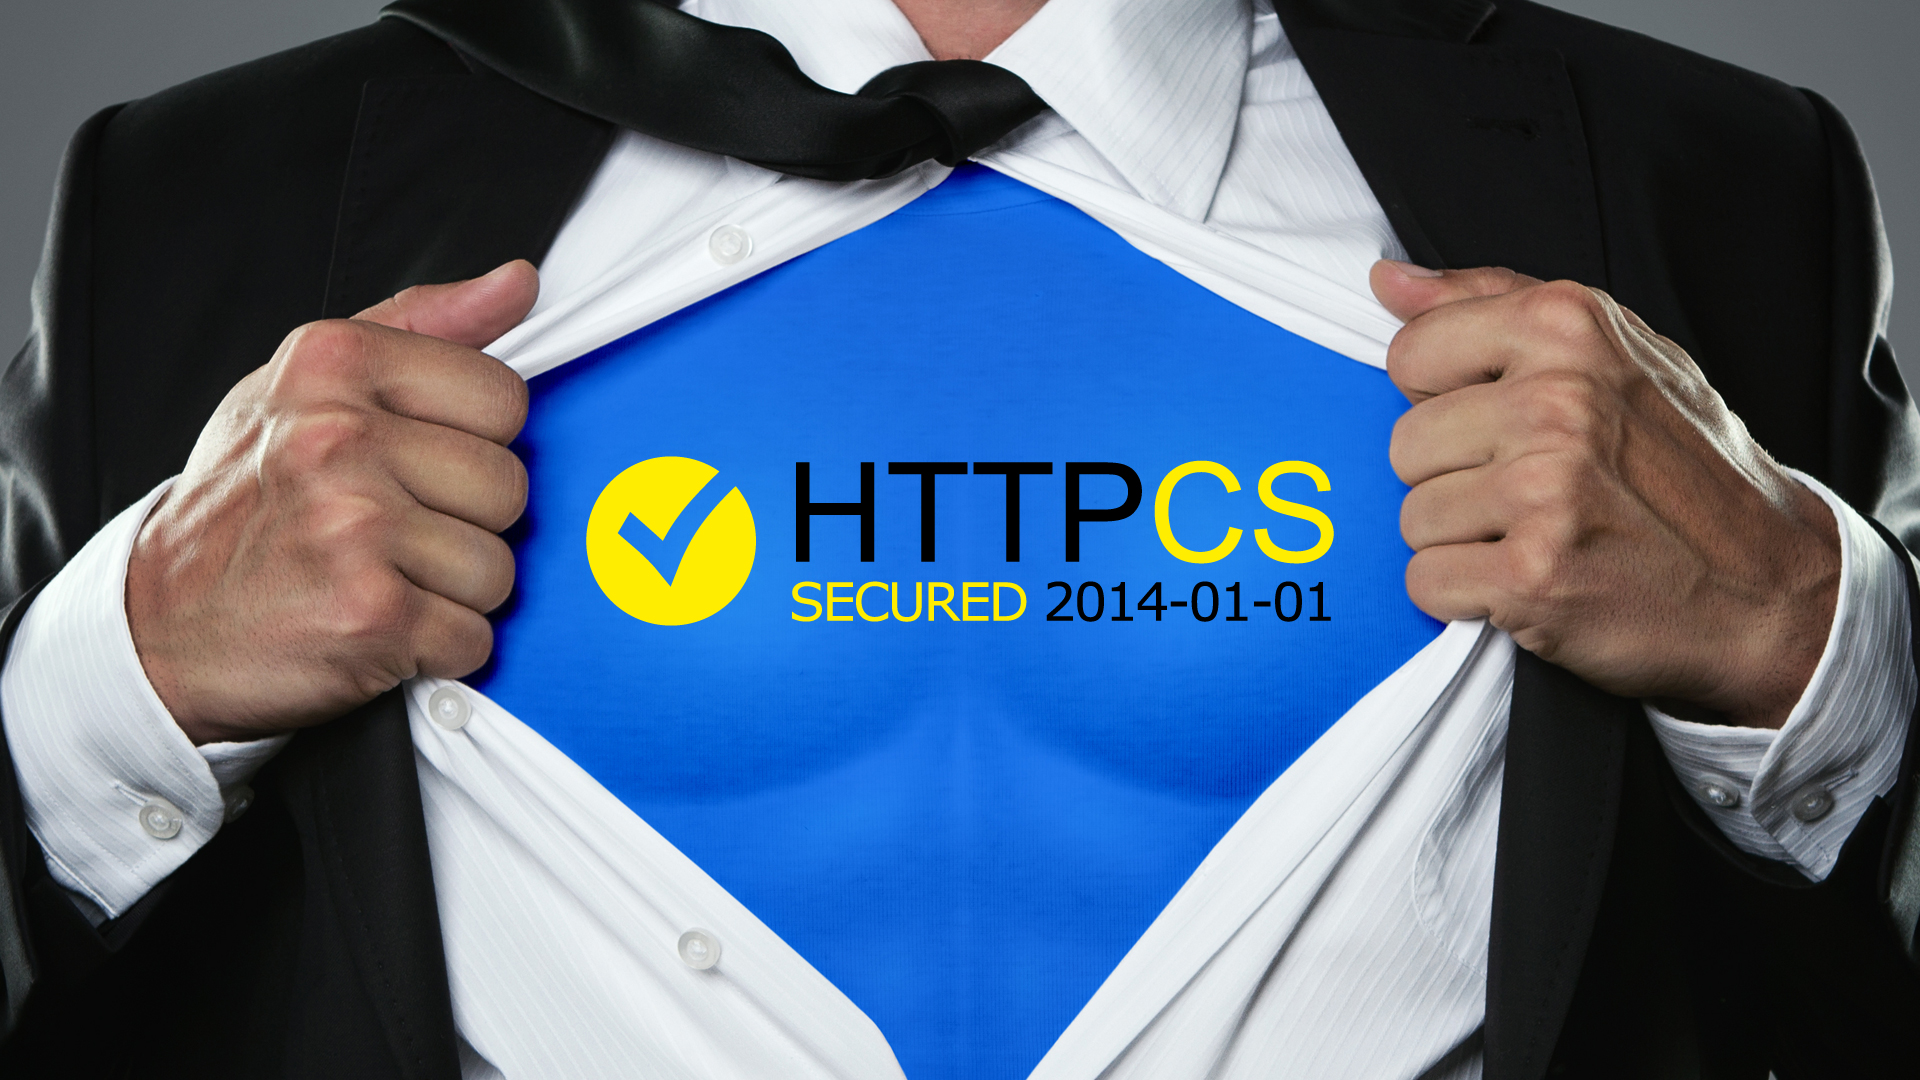 httpcs-creation-logo-securisation-web-caconcept-alexis-cretin-graphiste-montpellier